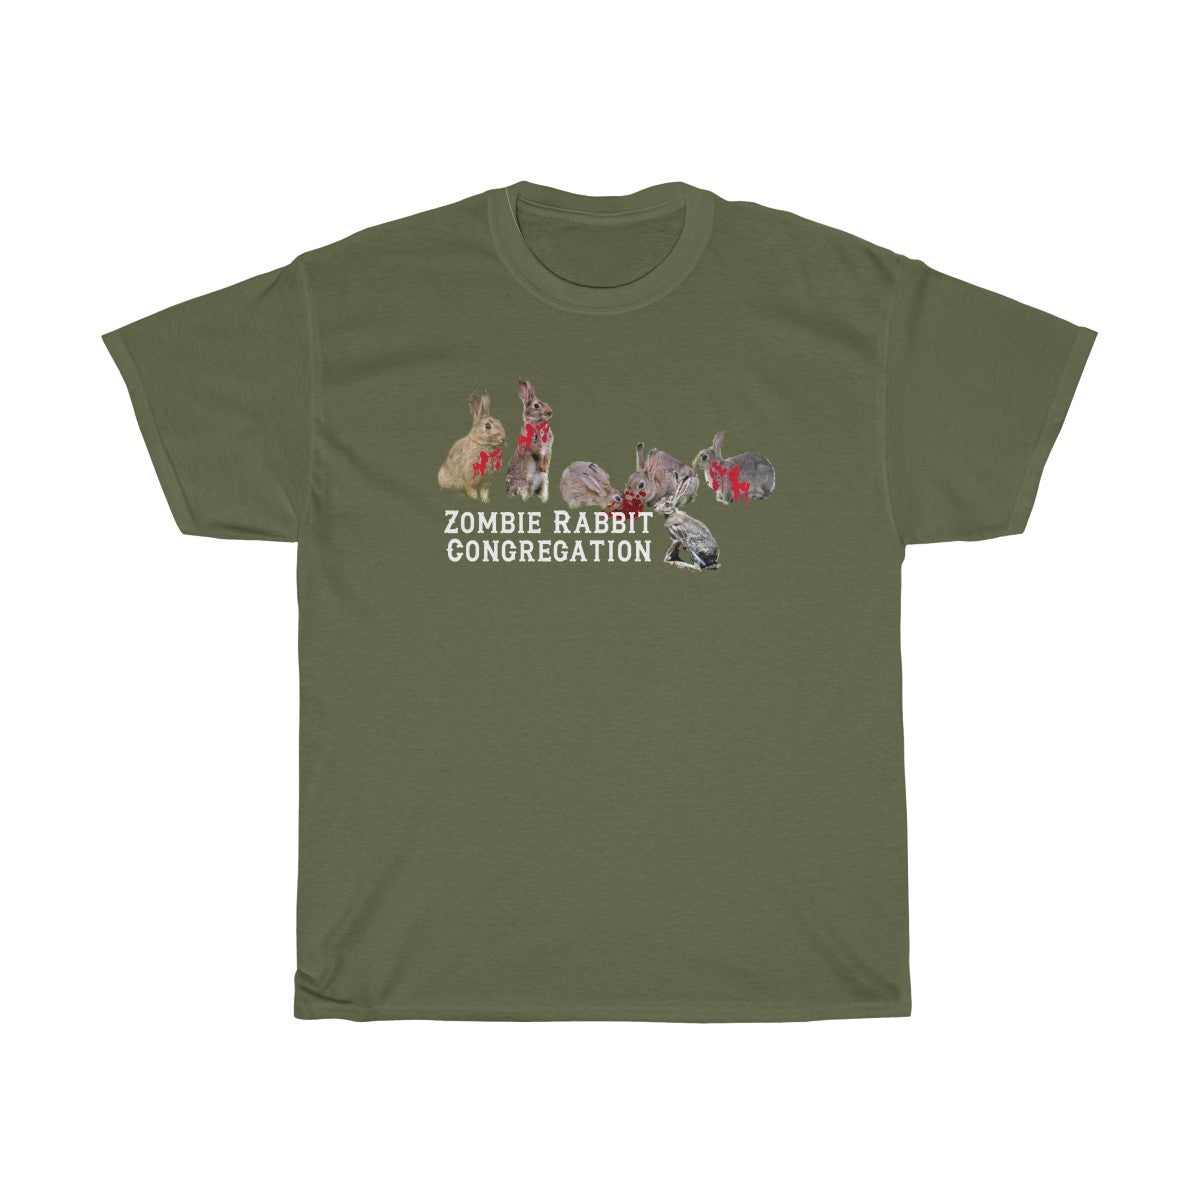 (Zombie Rabbit Congregation) Unisex Heavy Cotton Tee - lol - LOL, I Need that! LLC